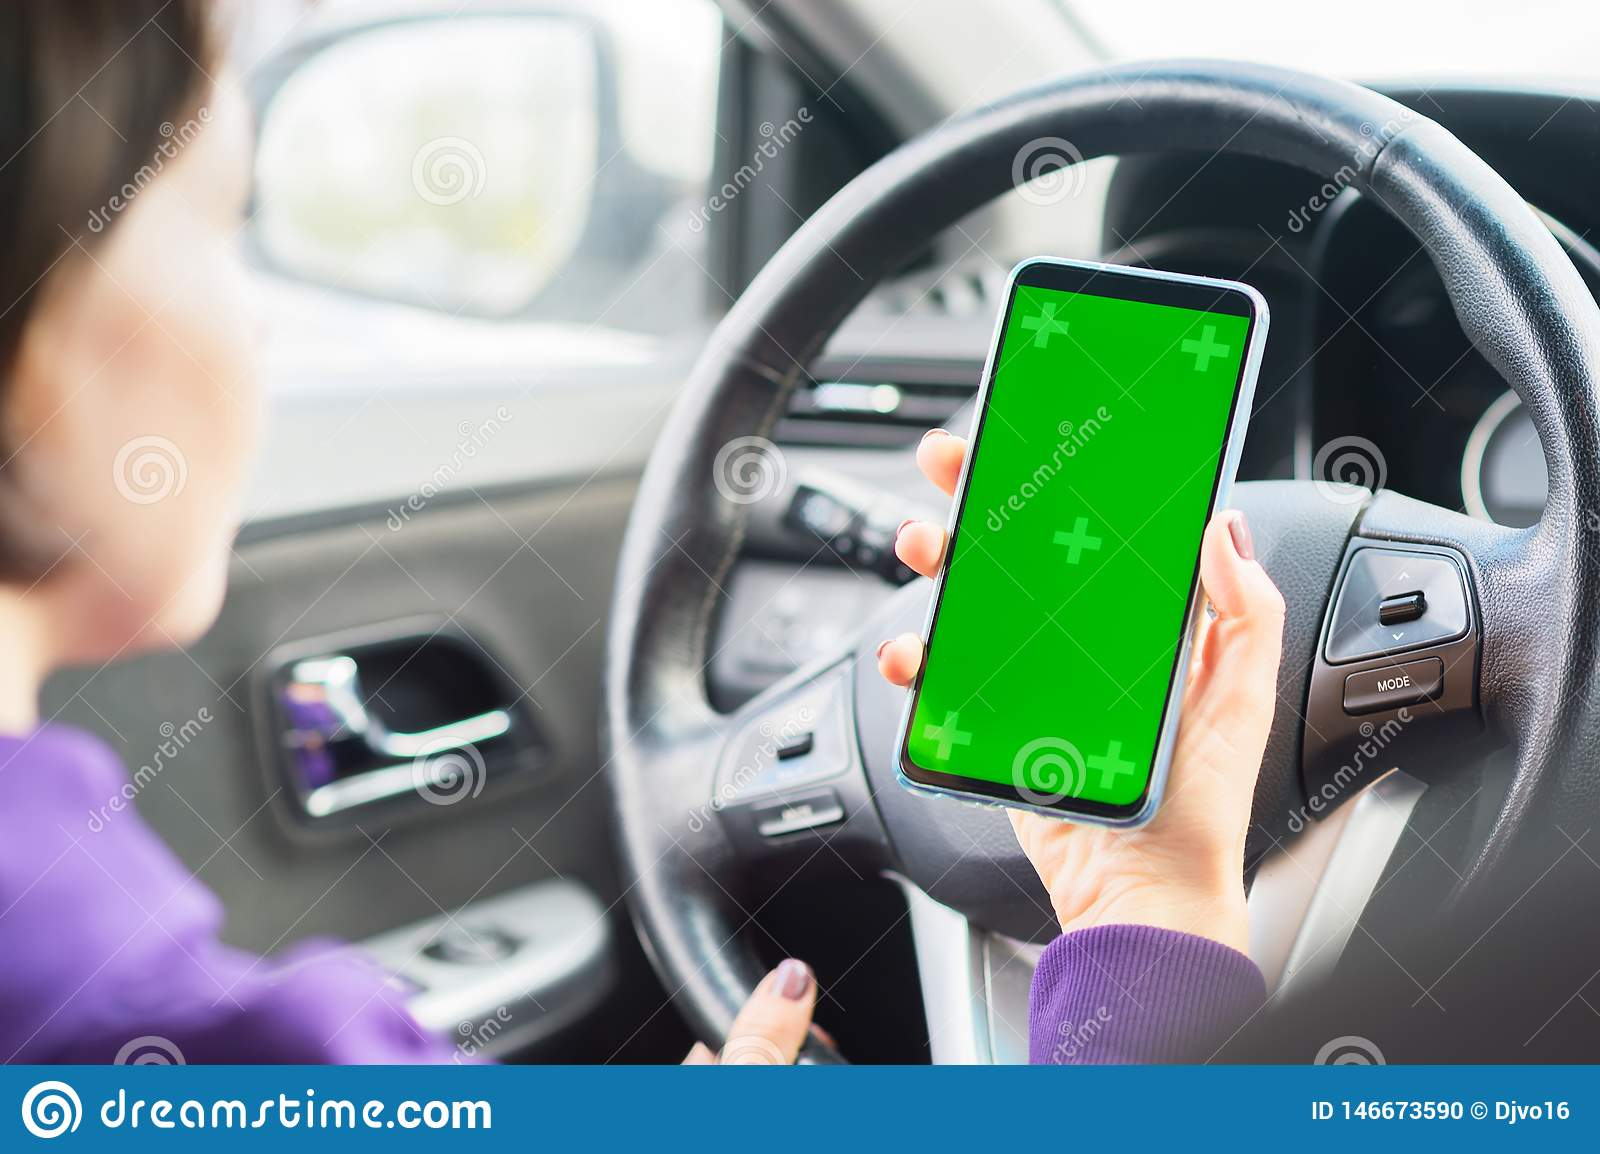 Young female driver using touch screen smartphone in a car. green chroma key on the phone display